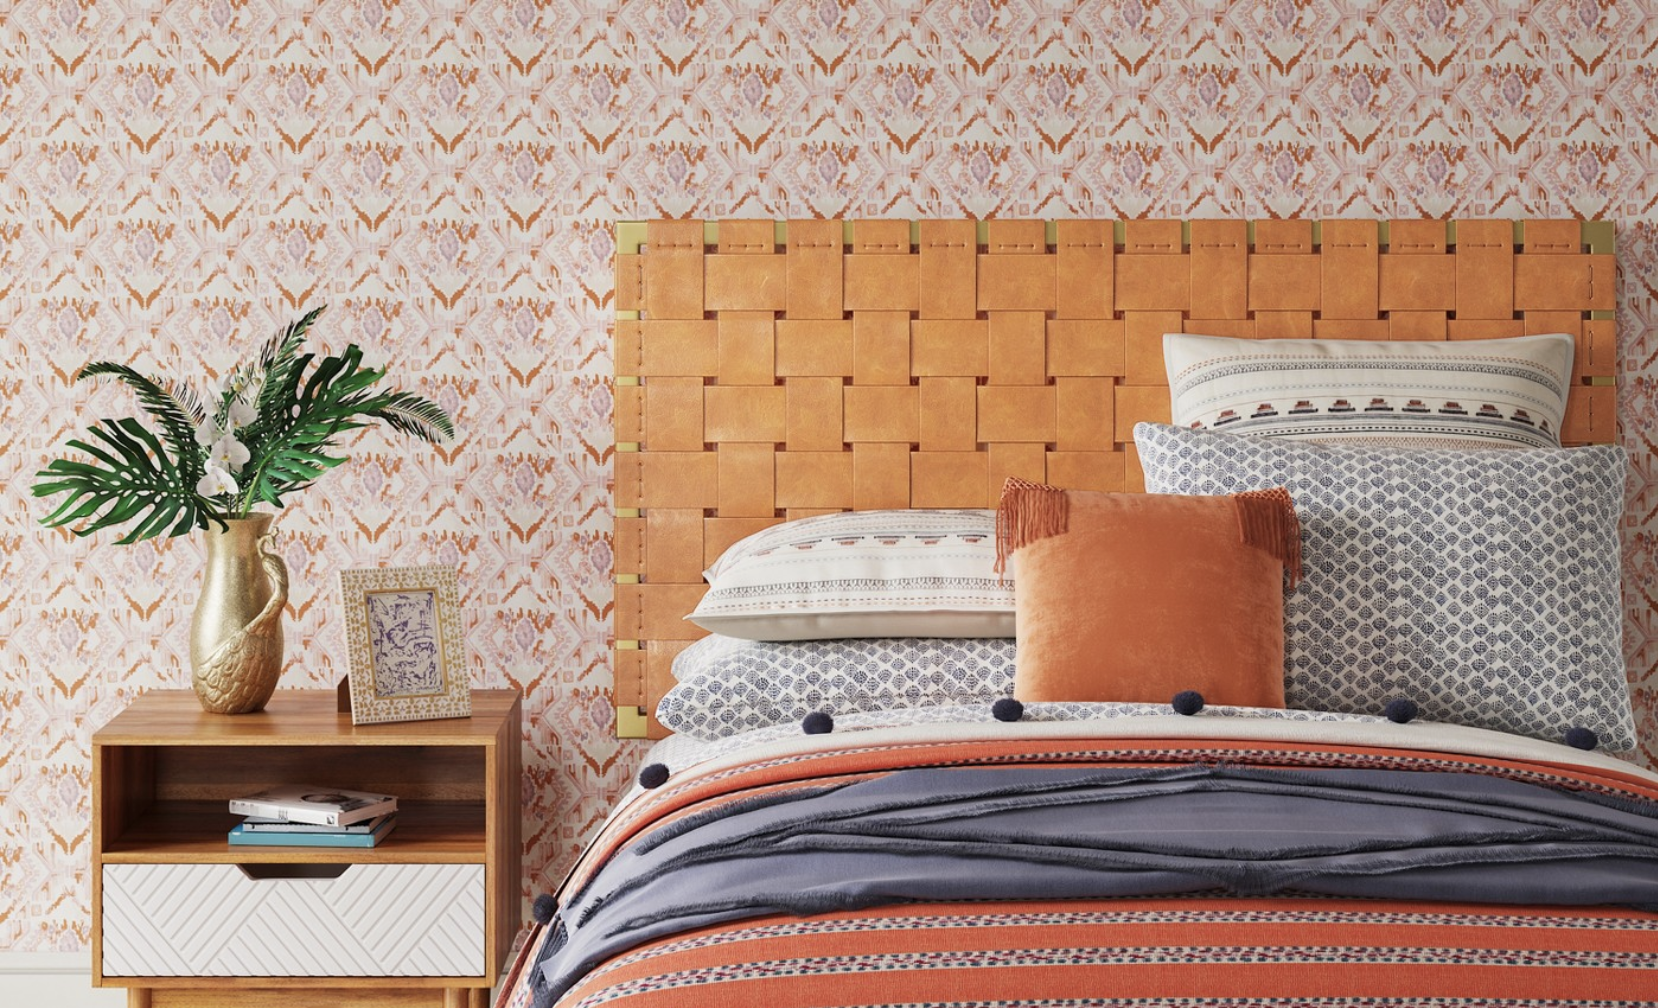 My first pick is  this headboard  from the Opalhouse collection.